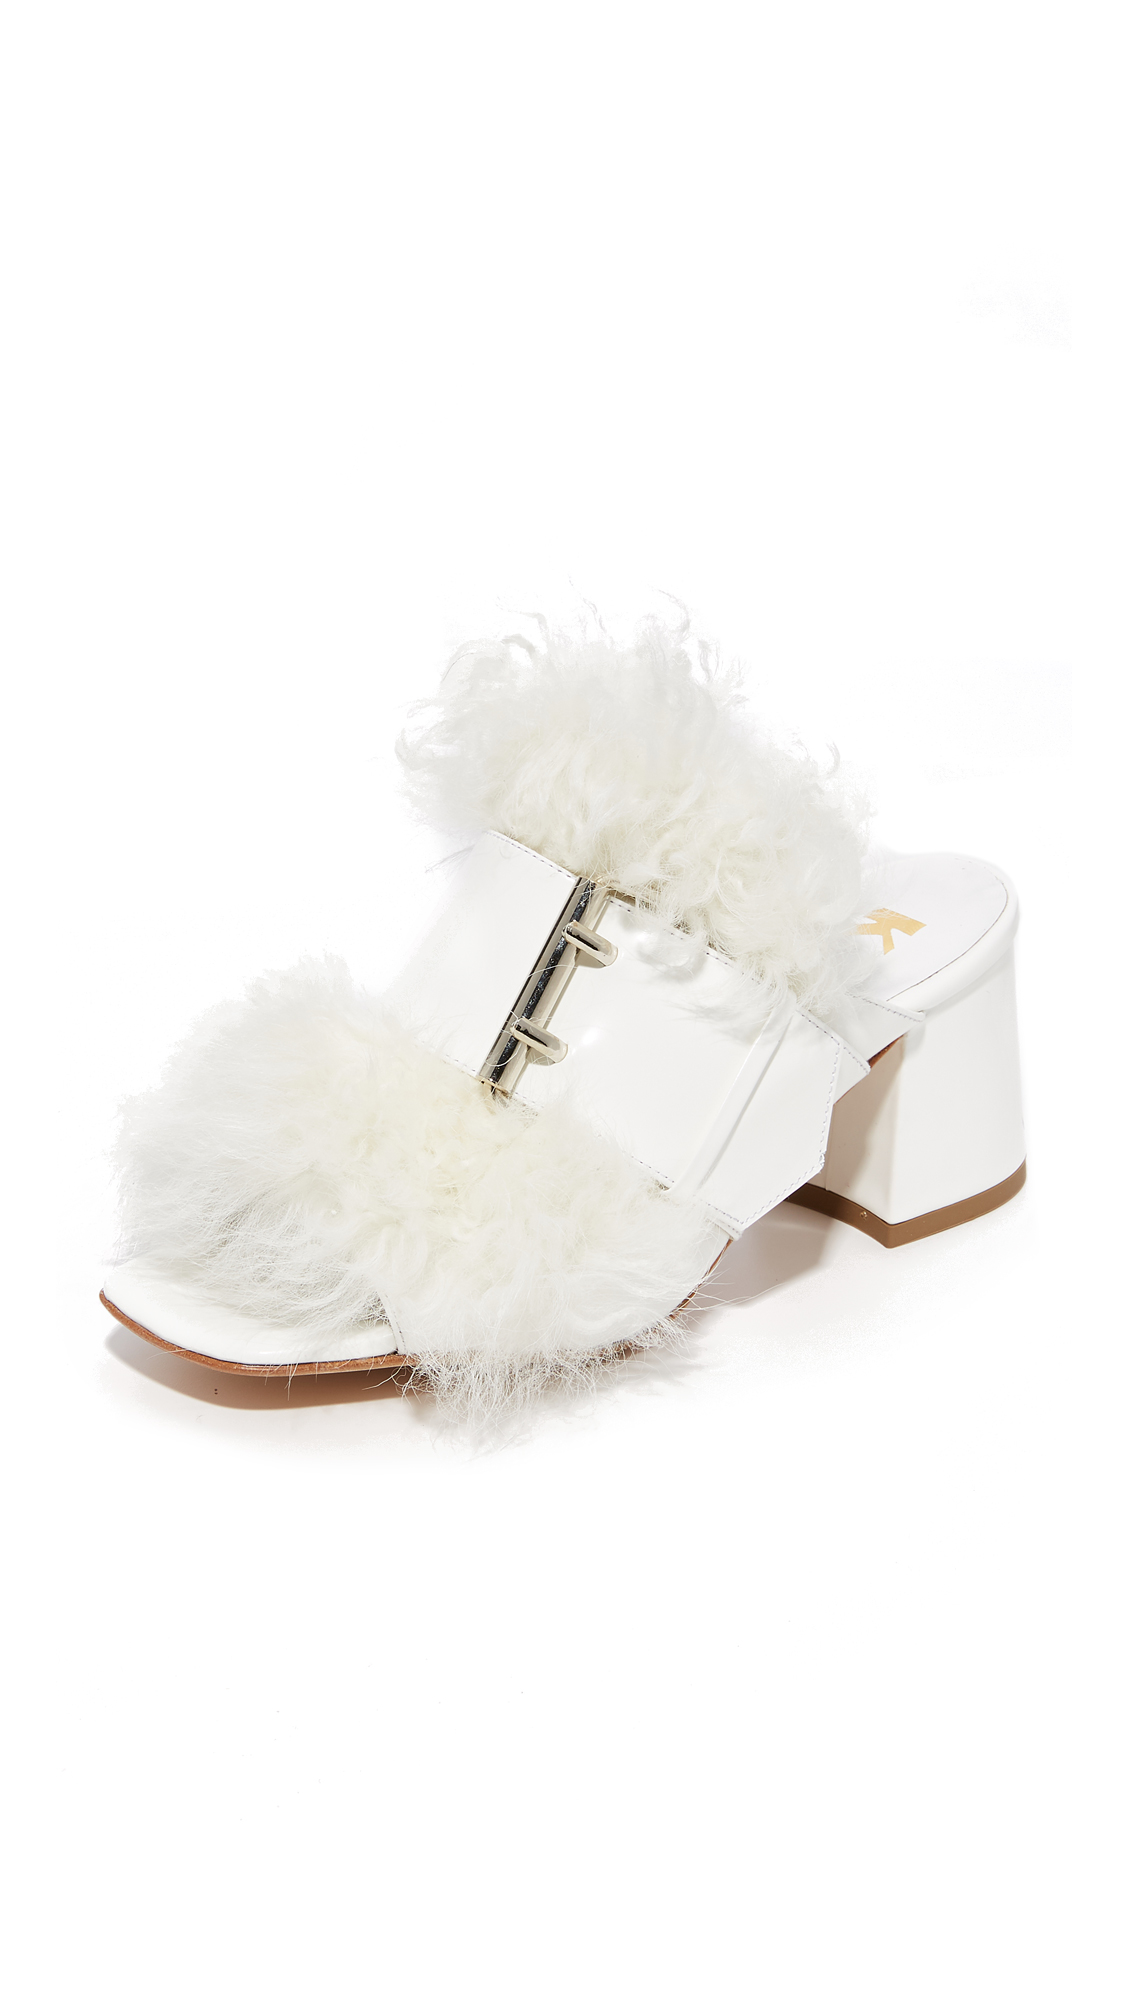 Kalda Jones Buckle Mules - White